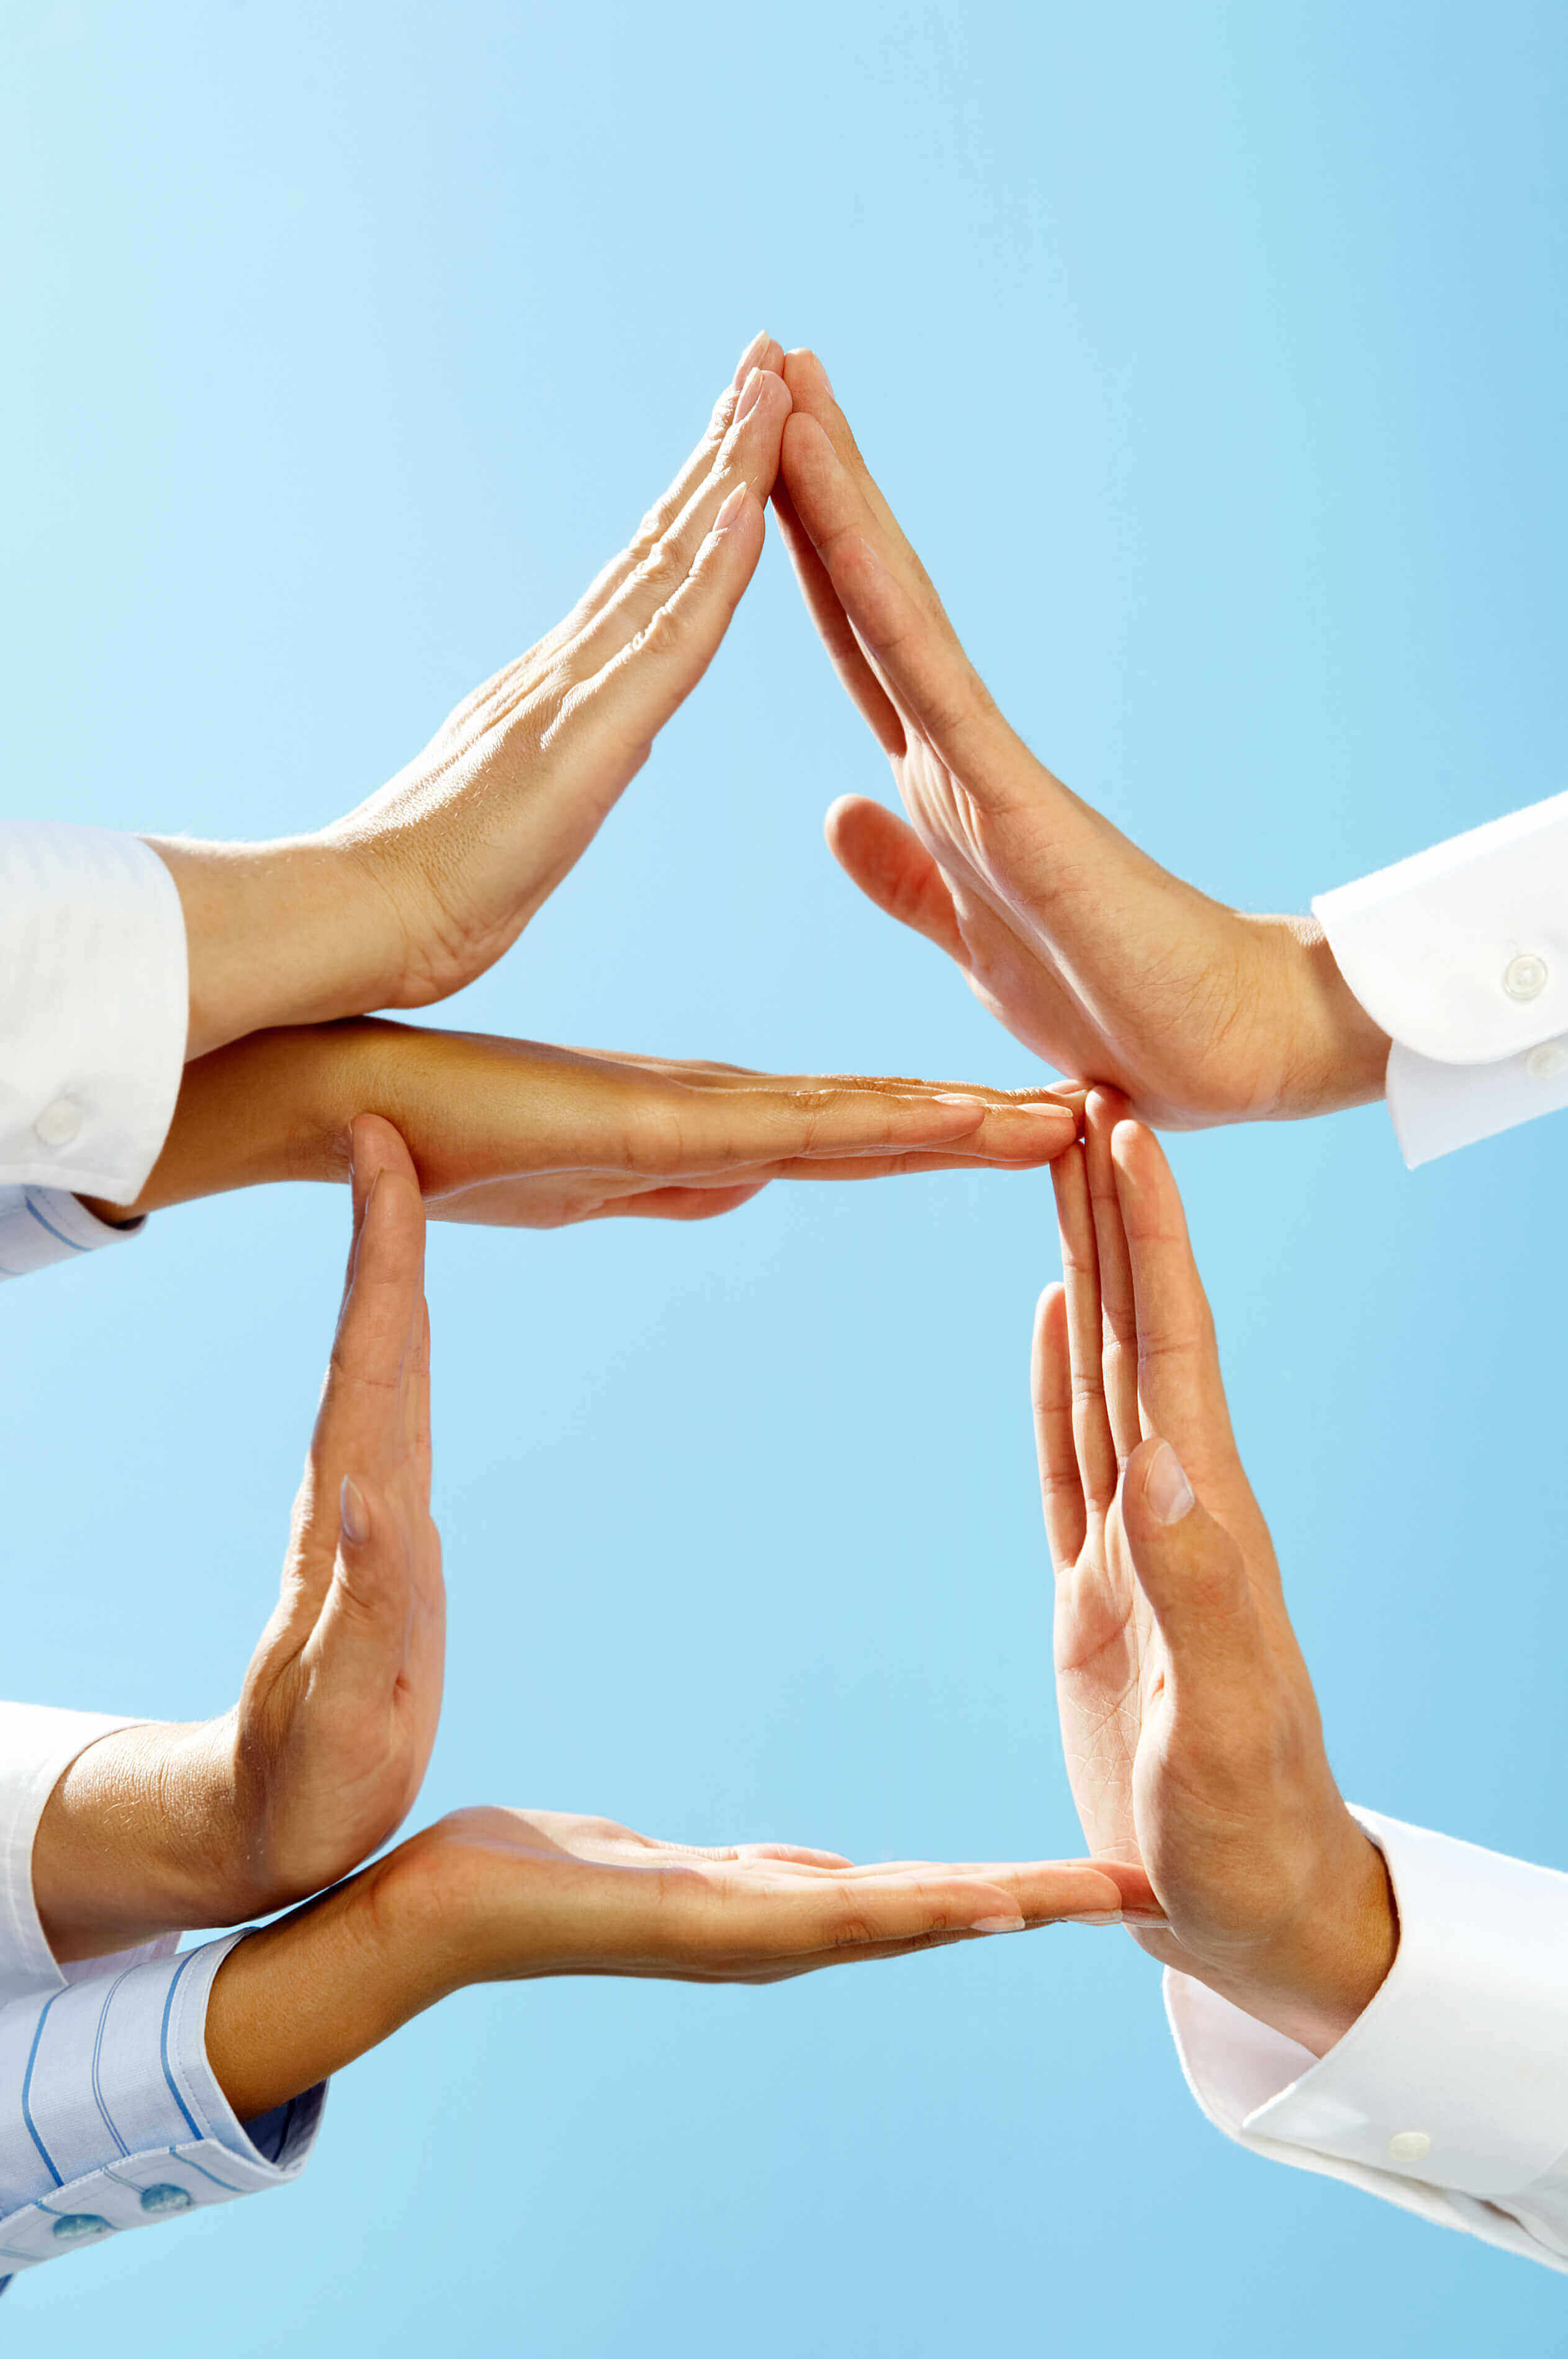 Hands forming a triangle on top of a square - optimize the customer journey